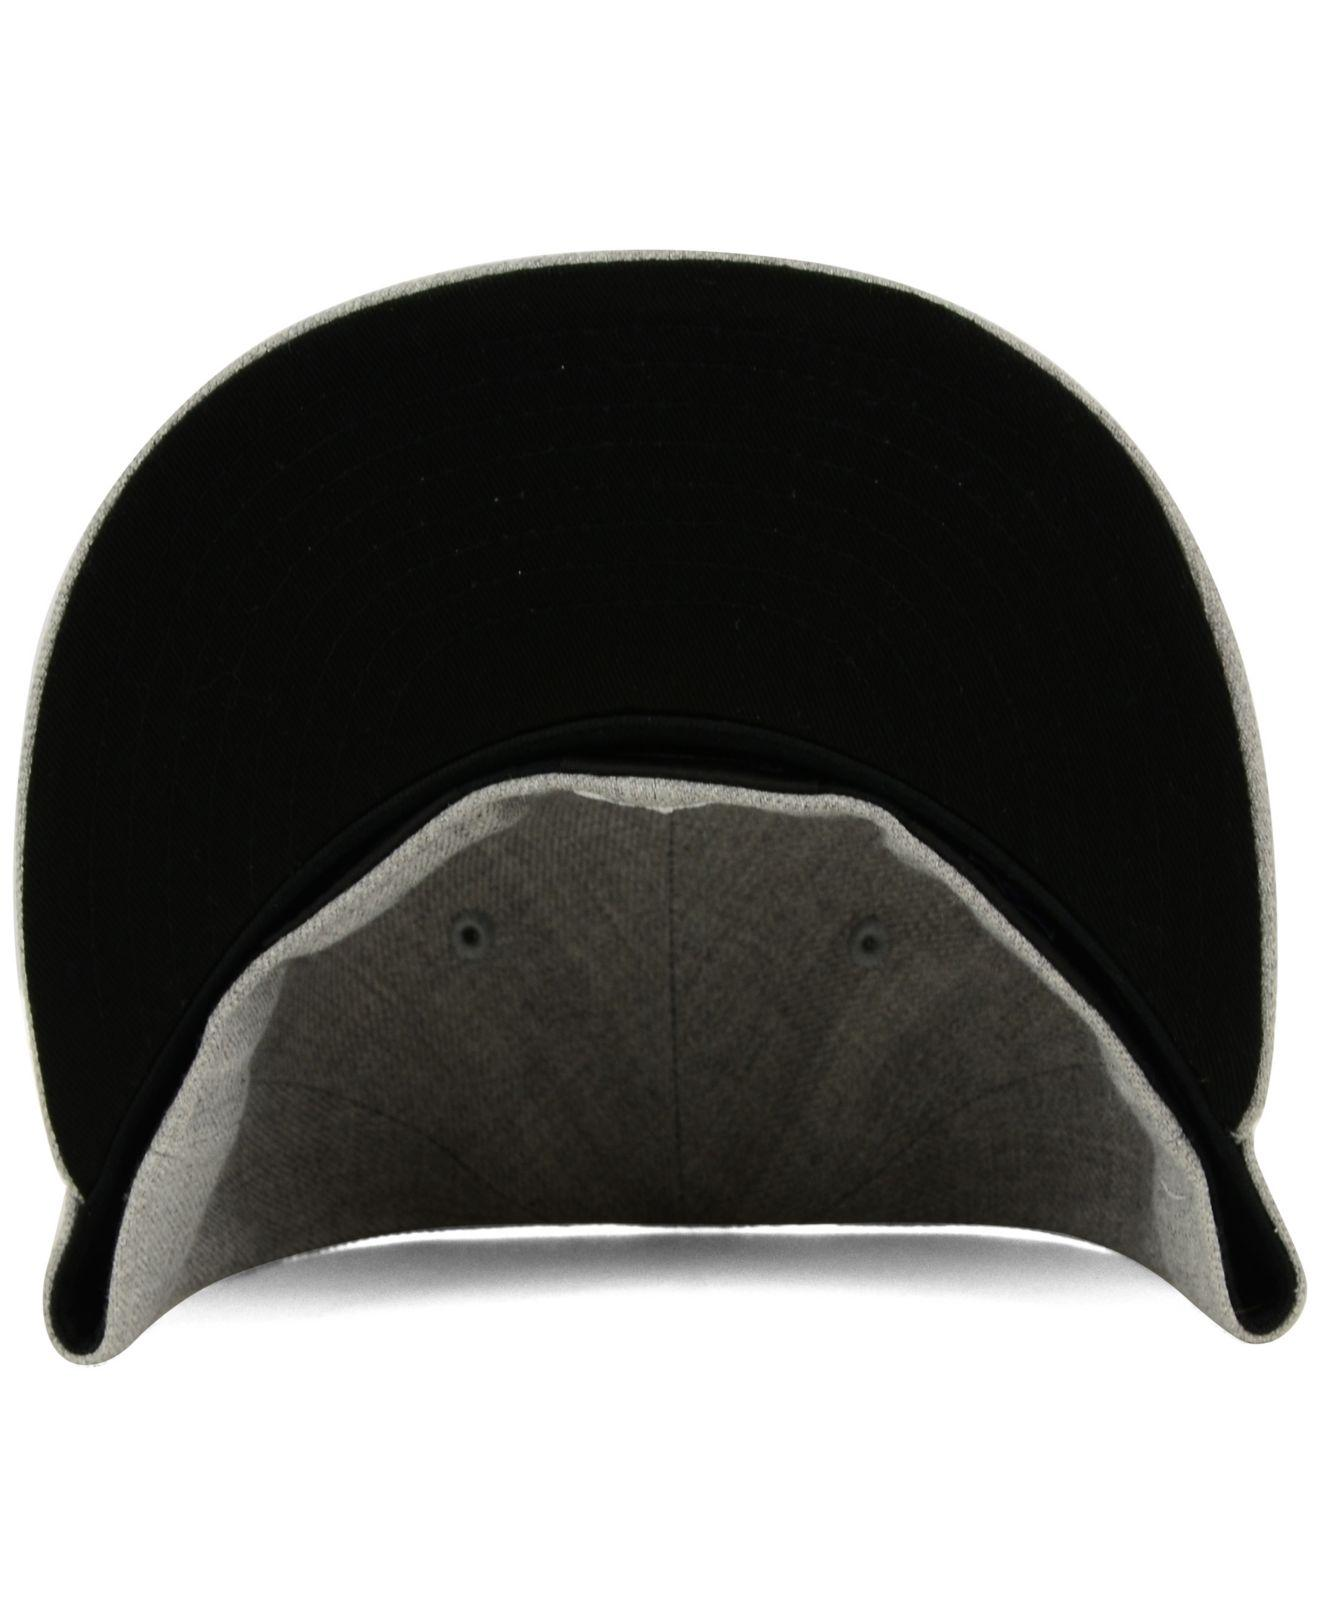 ... order seattle seahawks heather black white 59fifty cap for men lyst.  view fullscreen 6a1e7 ff864 0f4e1134d4bd